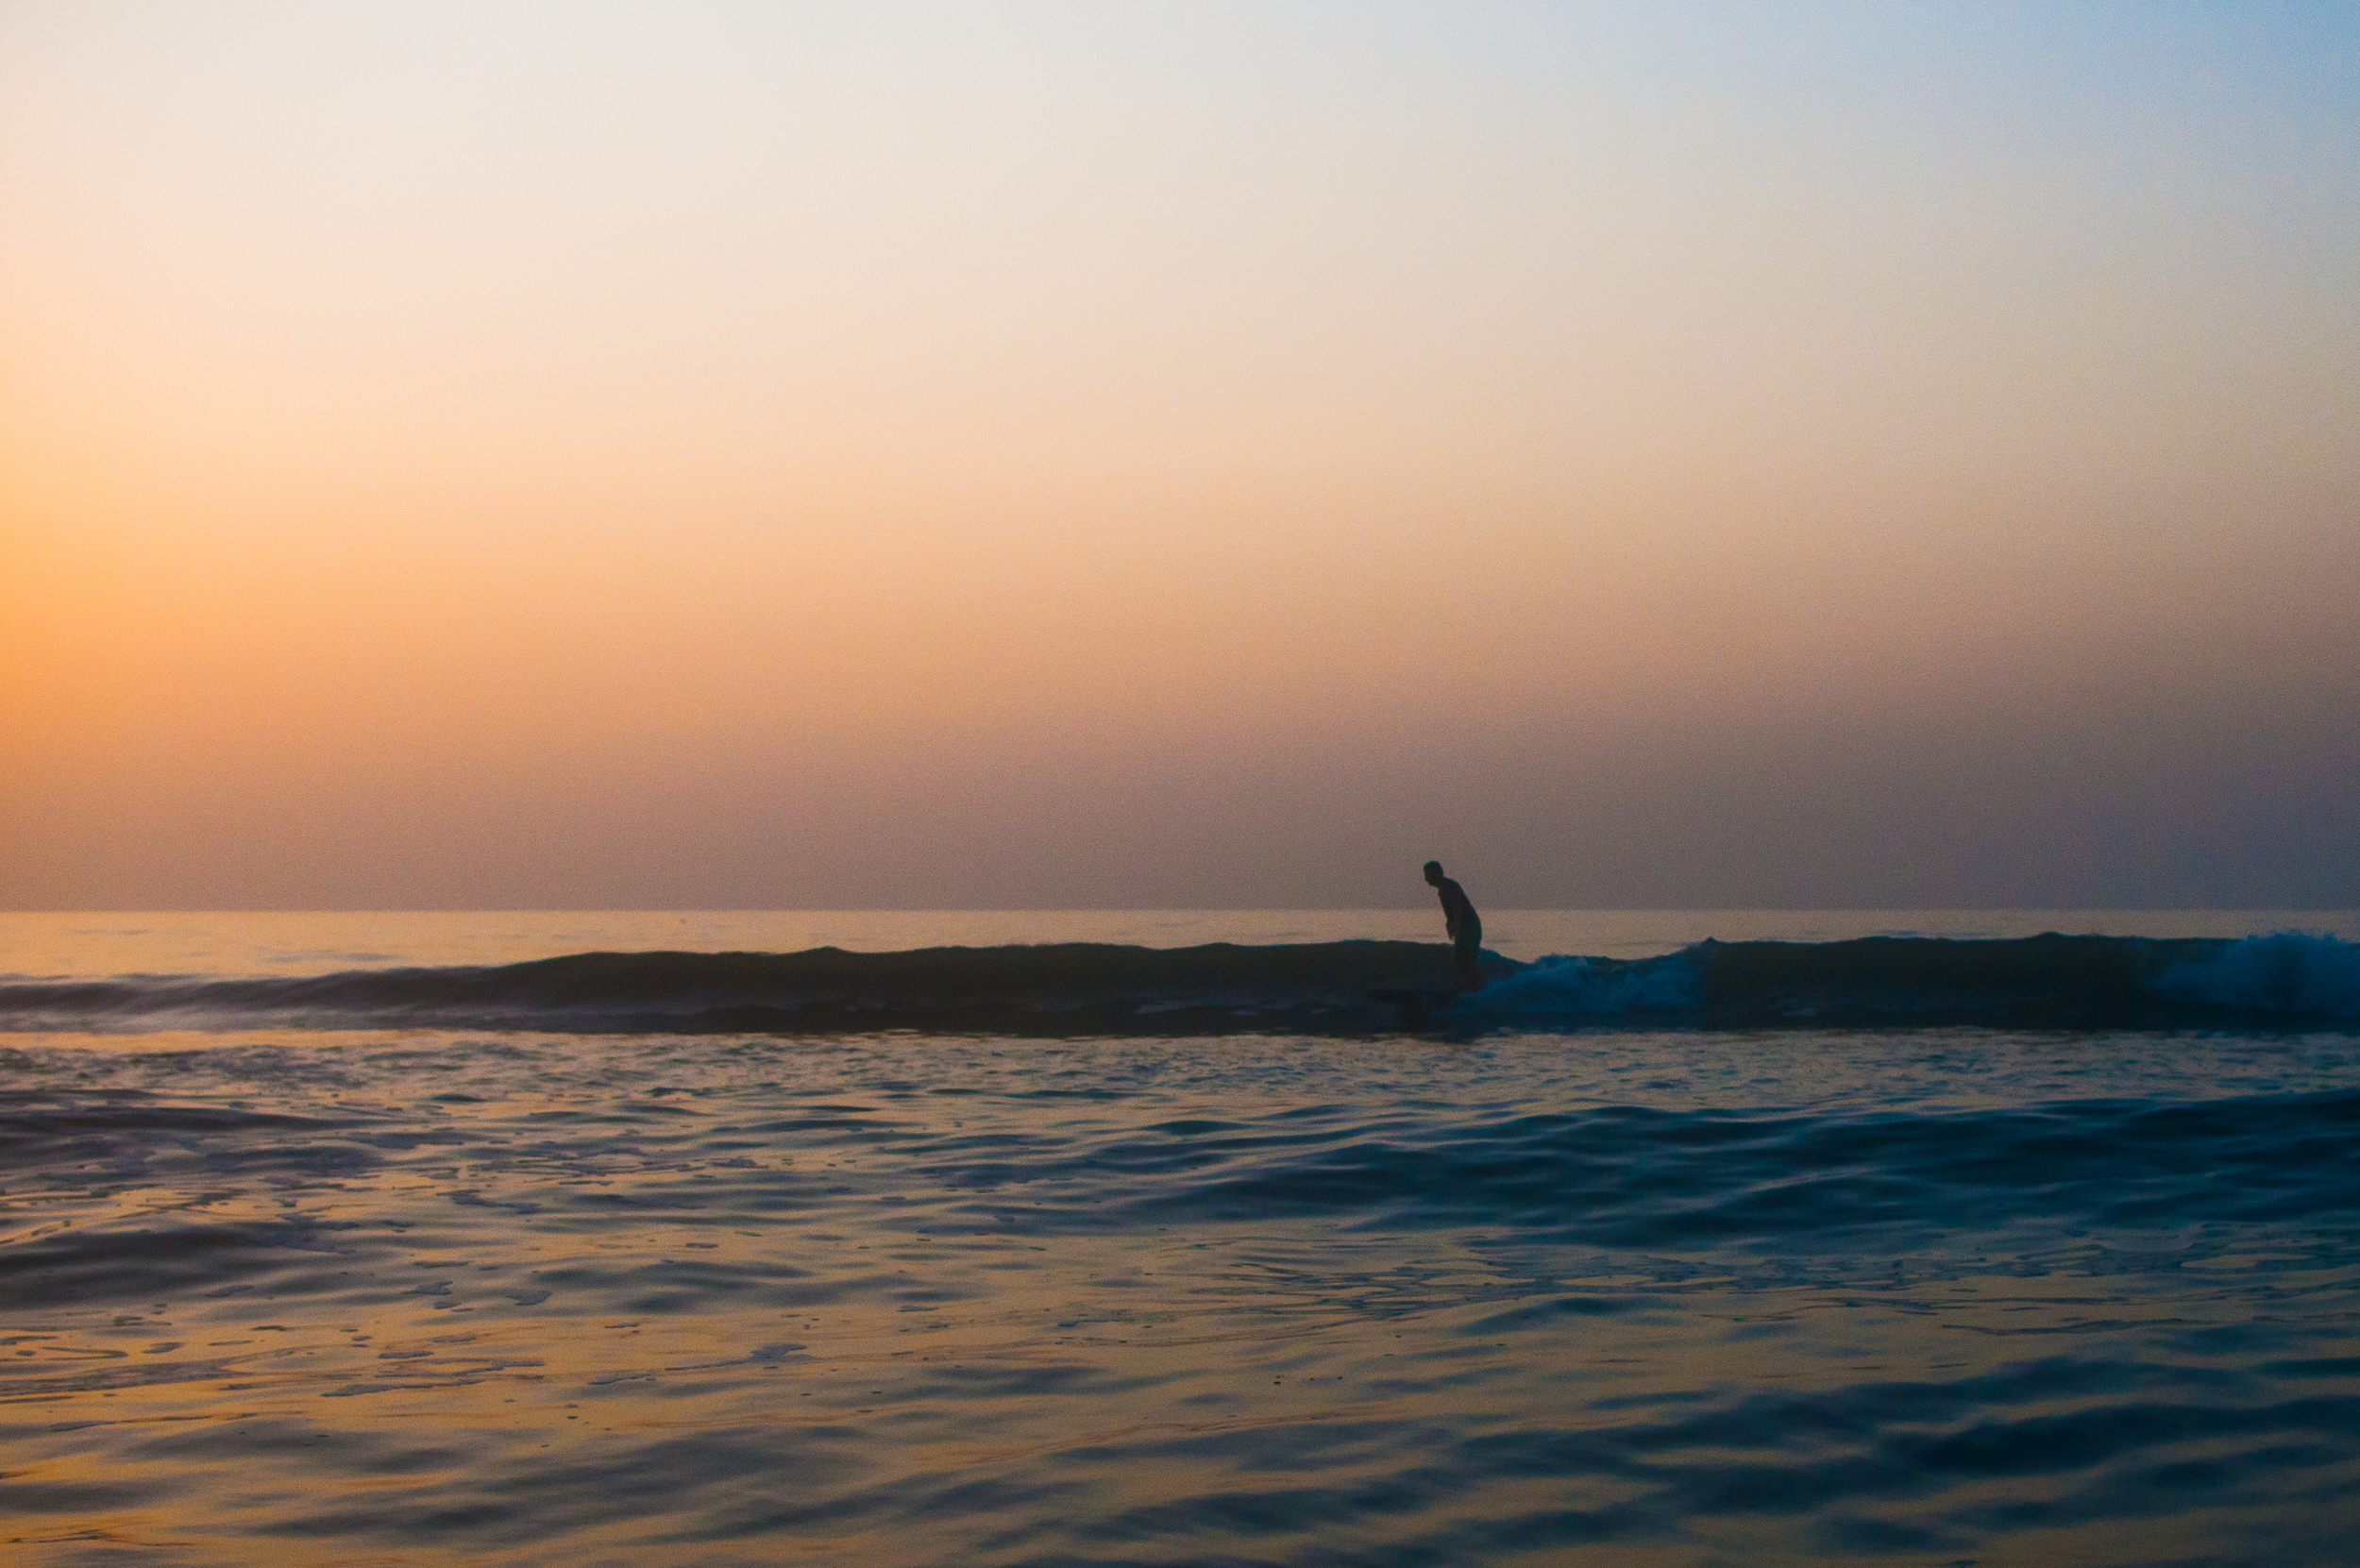 This was Chris's first wave of the morning. I was just dialing in the setting on my housing in knee deep water and he takes off on this long right. The sun was still below the horizon and the wind was dead. One of my favorites from the session.